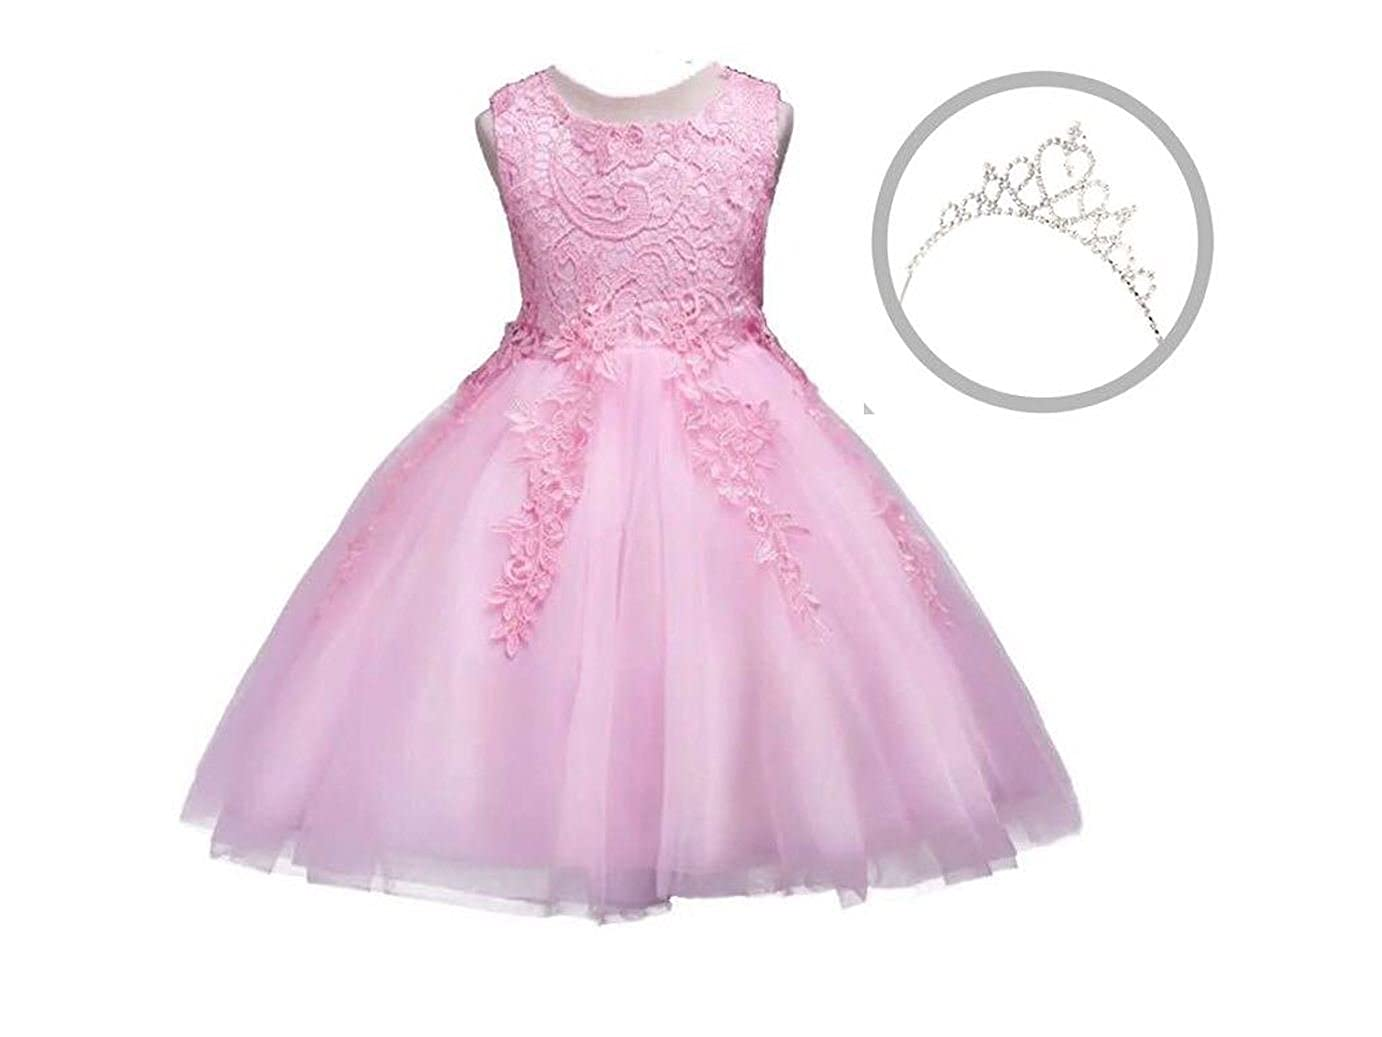 Summer Boutique//Tiara Included Girls Baby Lace Embroidery Formal Princess Wedding Christening Dress Perfect for Birthday Christmas Party//Present Gift